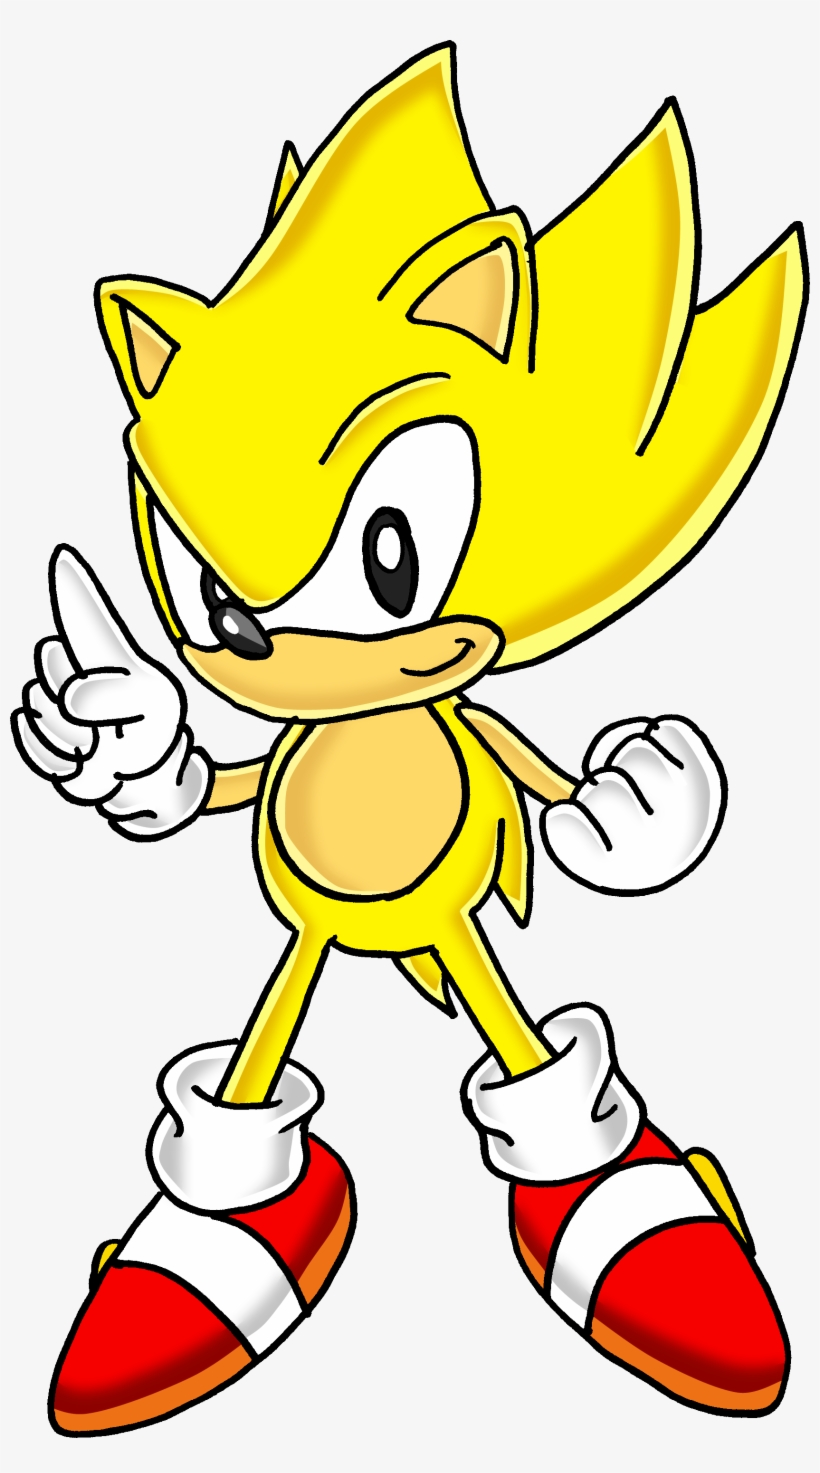 Classic Super Sonic The Hedgehog Easy Super Sonic Drawing Png Image Transparent Png Free Download On Seekpng